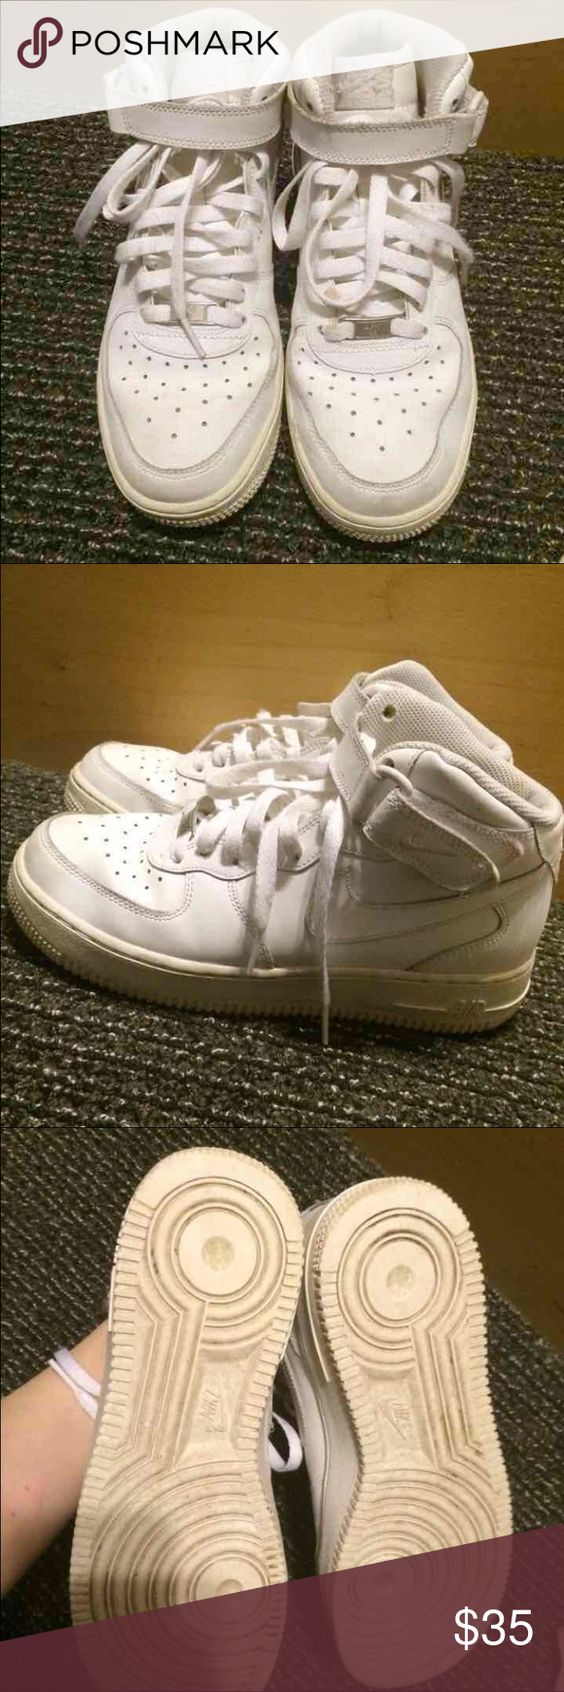 Nike Air High Tops Super cute Nike high tops.  Still in great condition. Awesome to use in and out of the gym! Nike Shoes Athletic Shoes